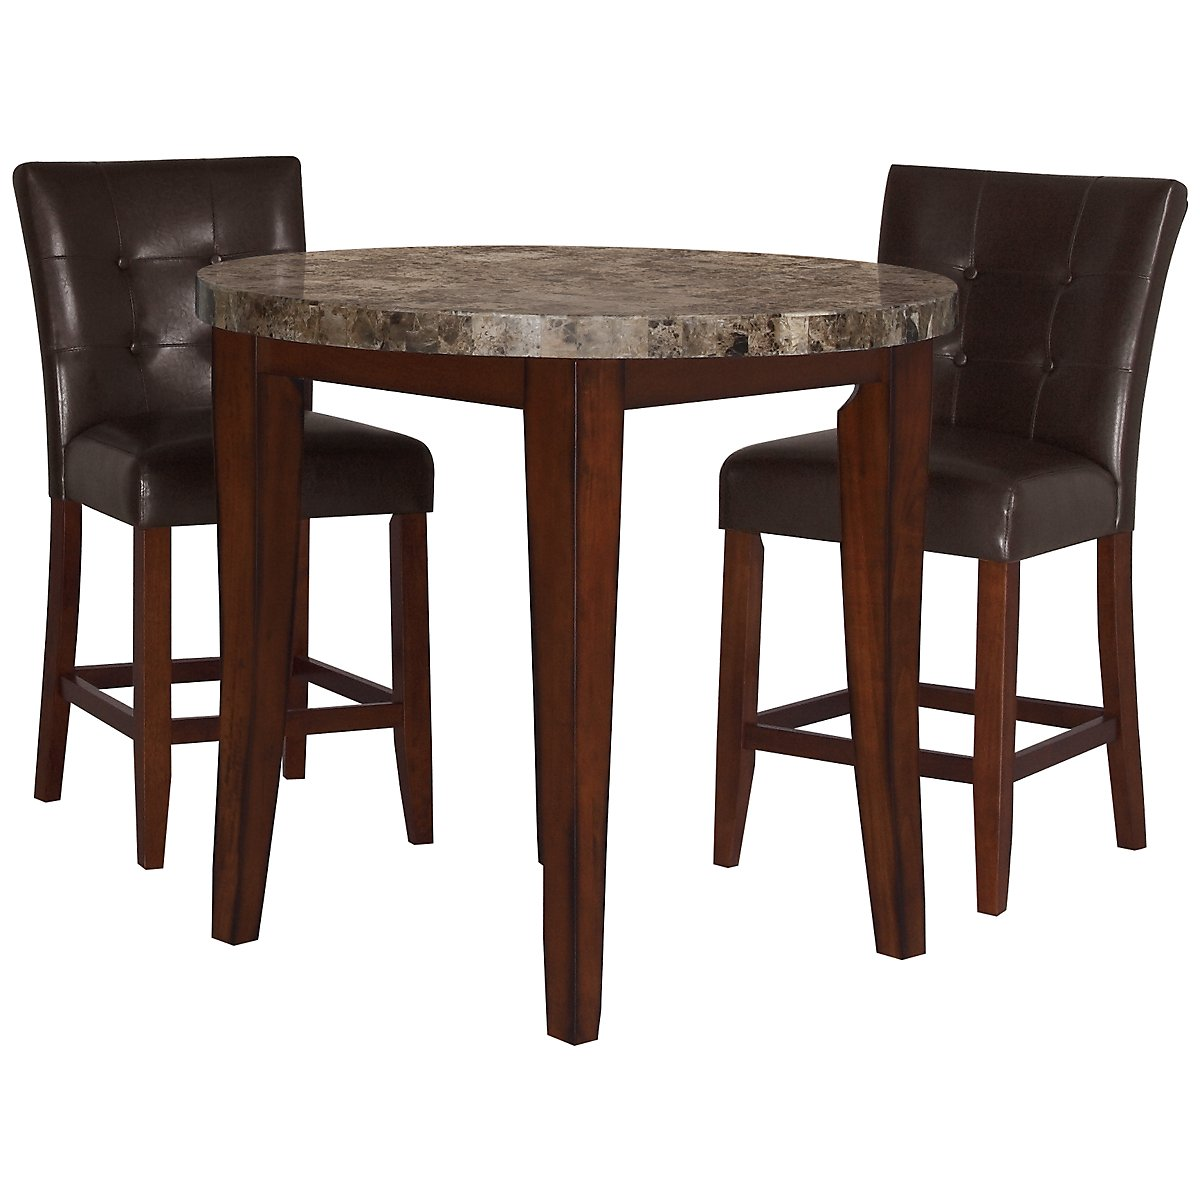 City Lights Round Marble High Dining Table 2 Upholstered Barstools